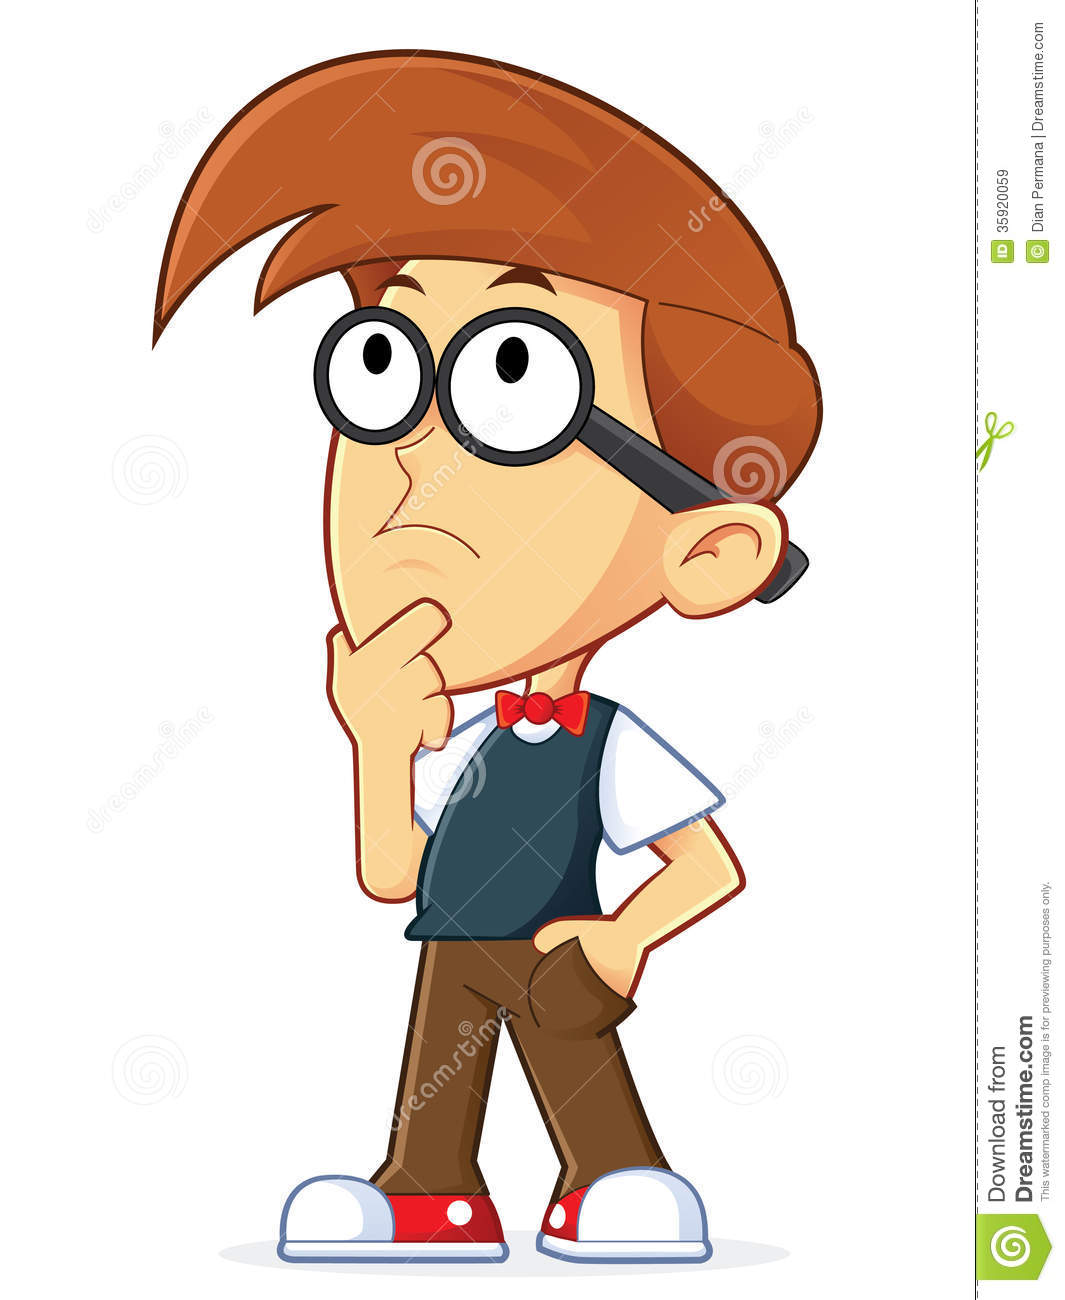 Geek clipart cartoon person Library Cartoon Art Thinking Images